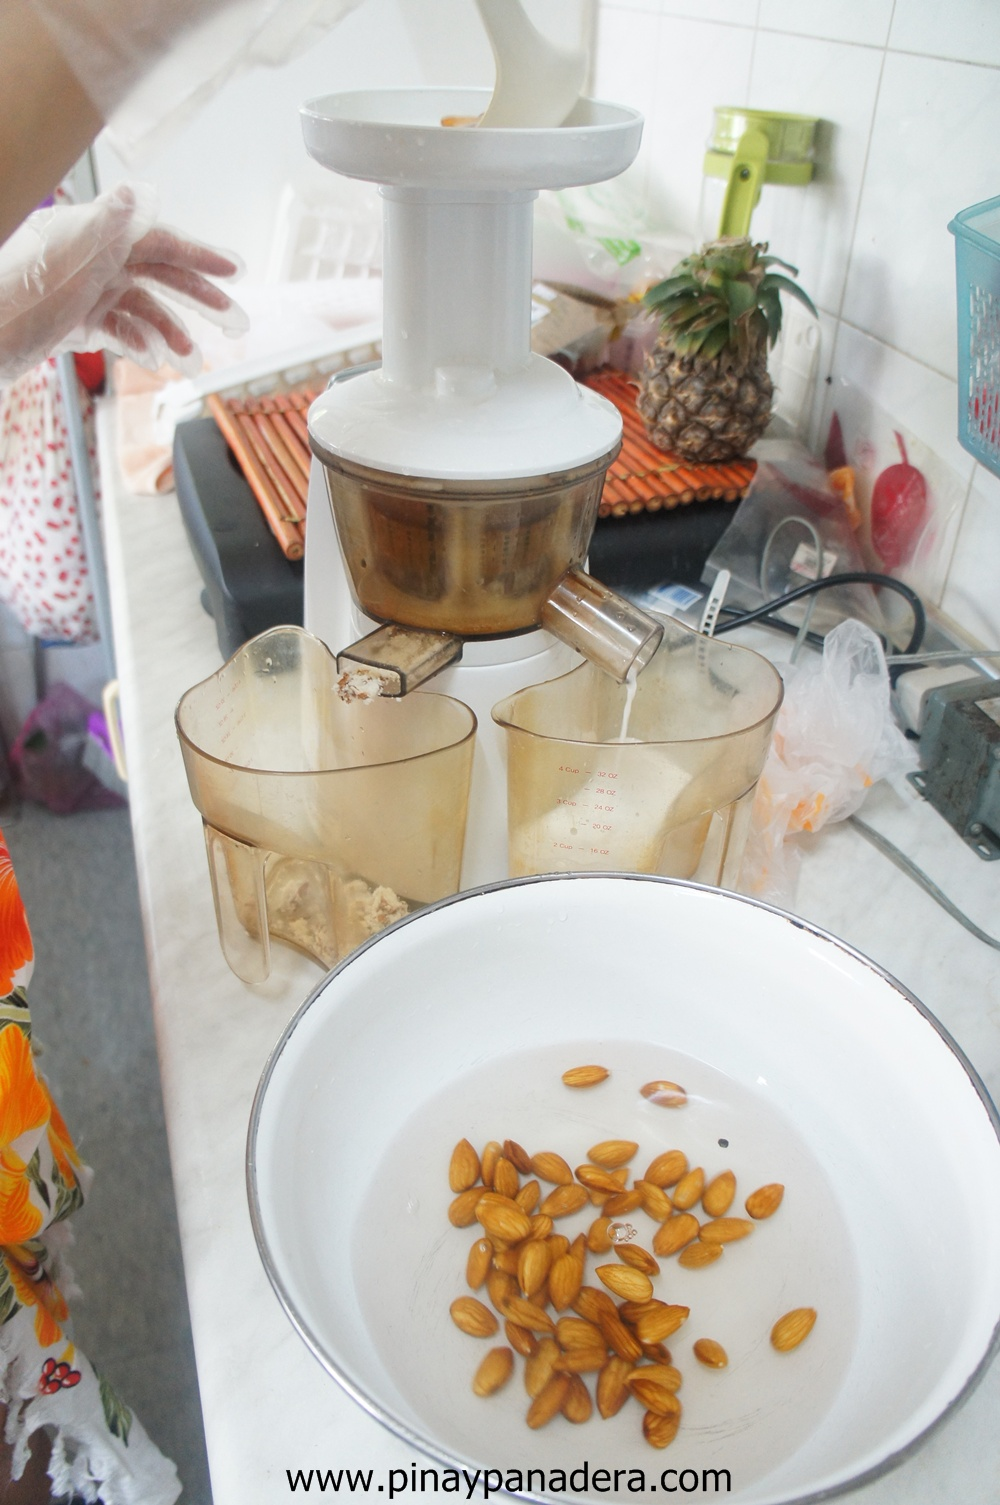 Hurom Slow Juicer Almond Milk Recipe : Pinay Panadera s Culinary Adventures: Kath s Nutritious Homemade Almond Milk